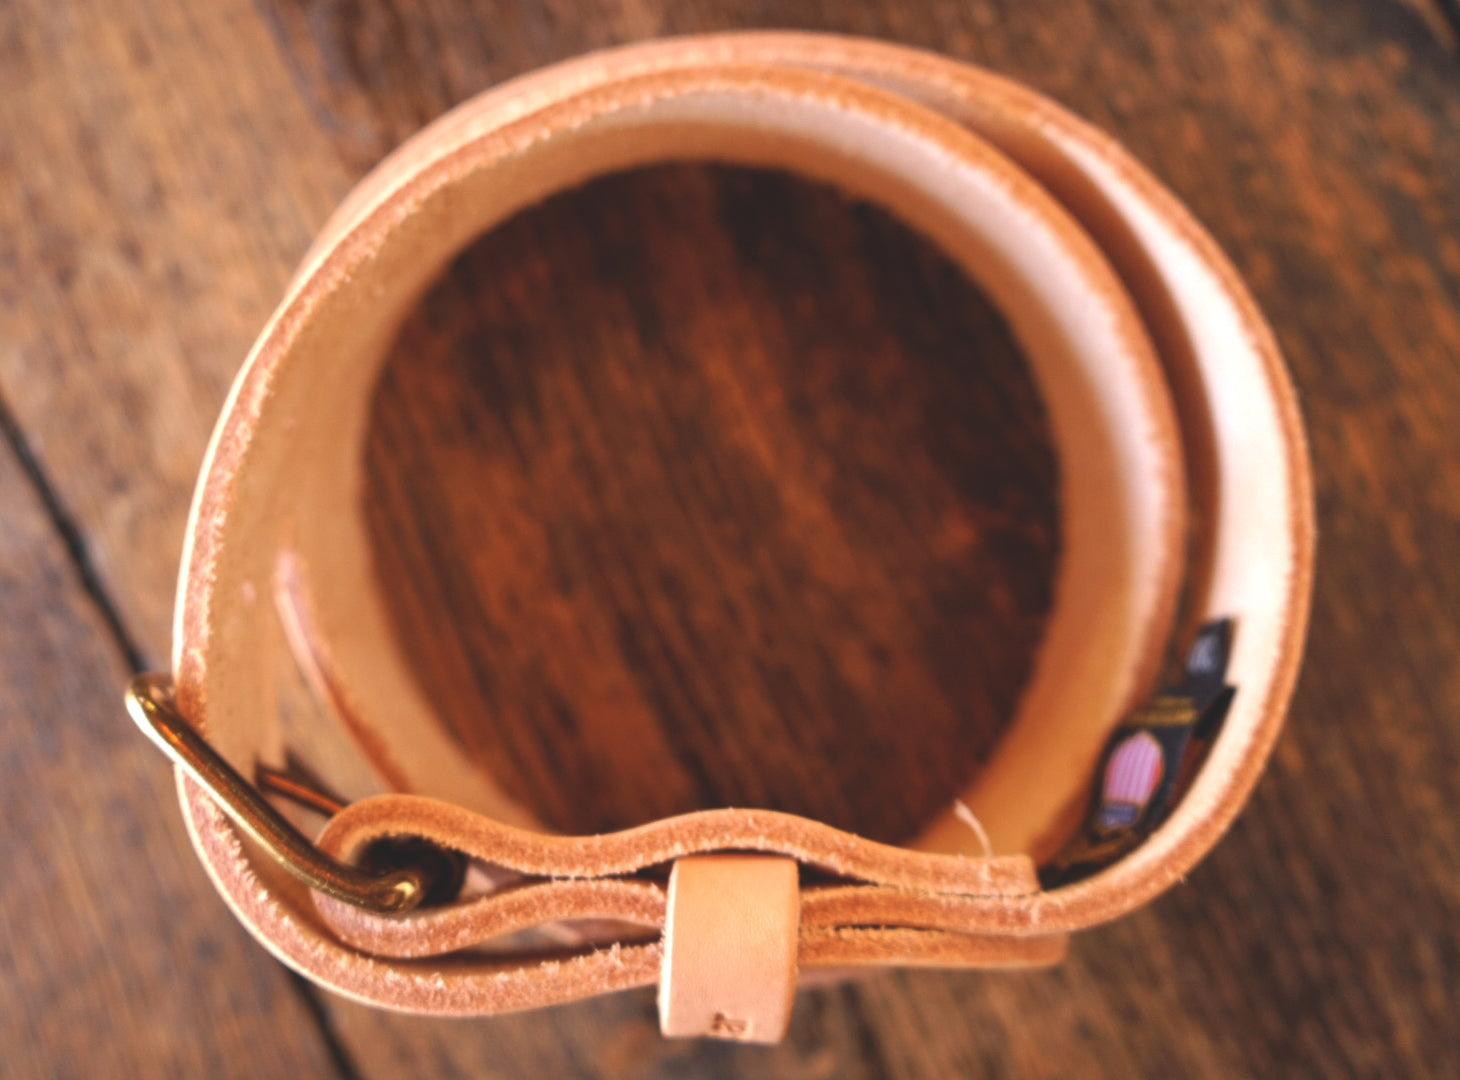 The Raw Leather Belt